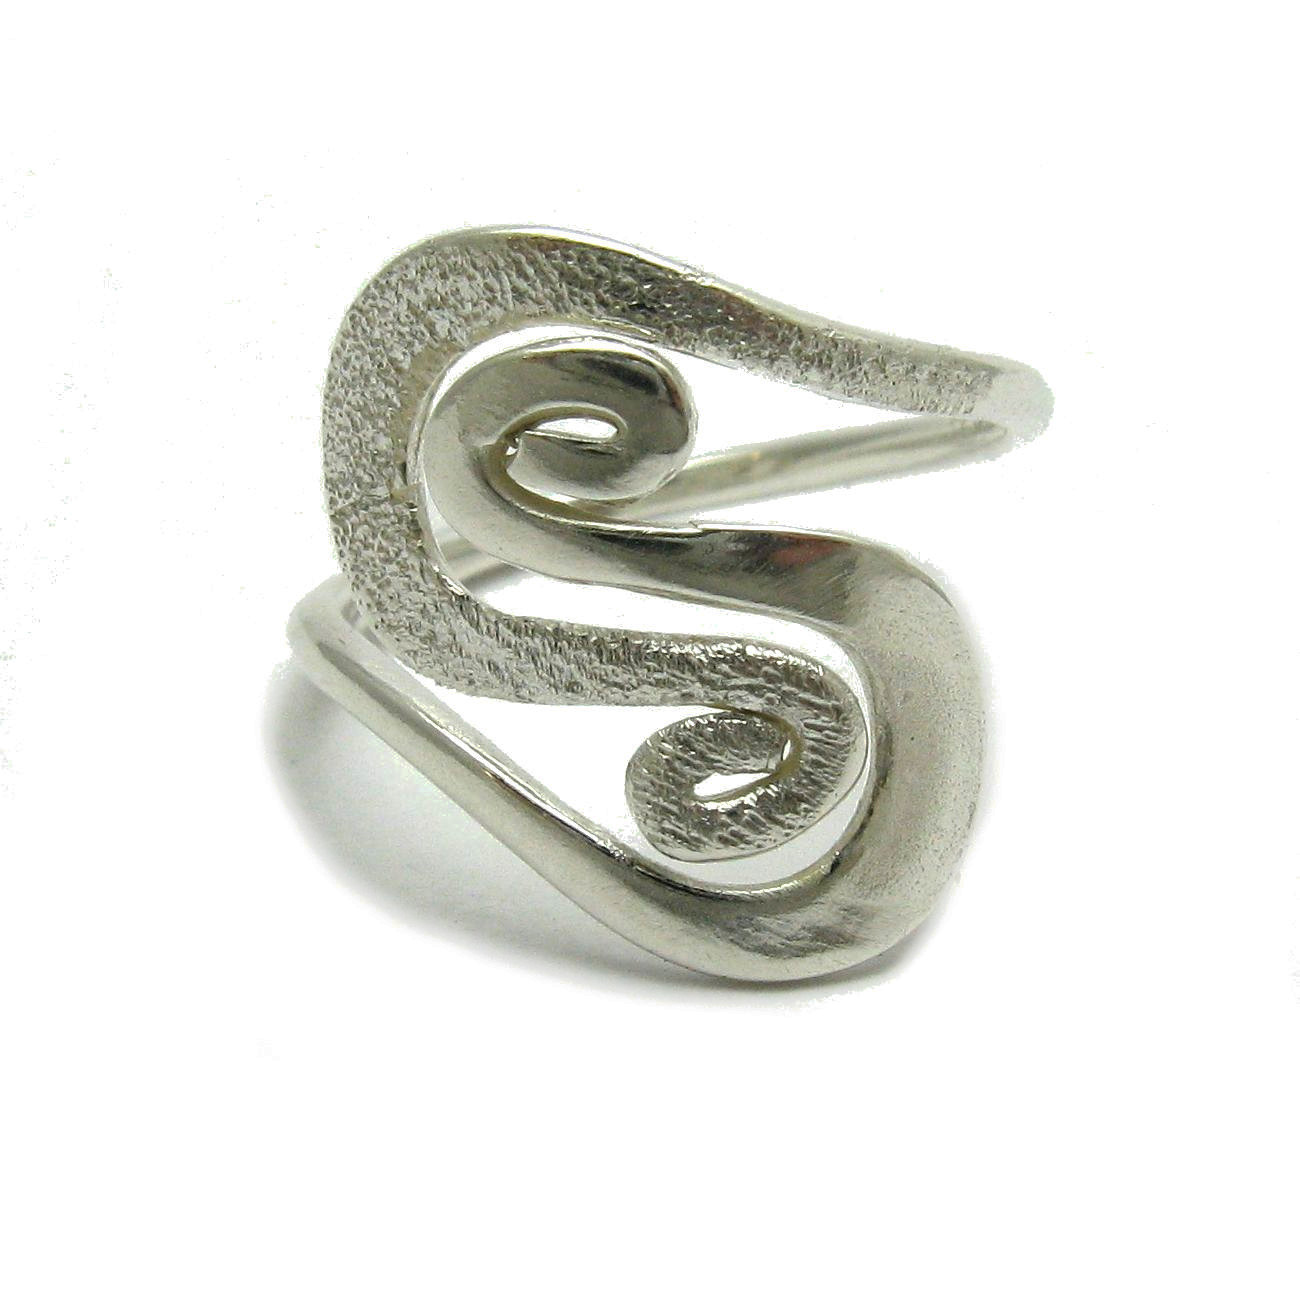 Silver ring - R001763